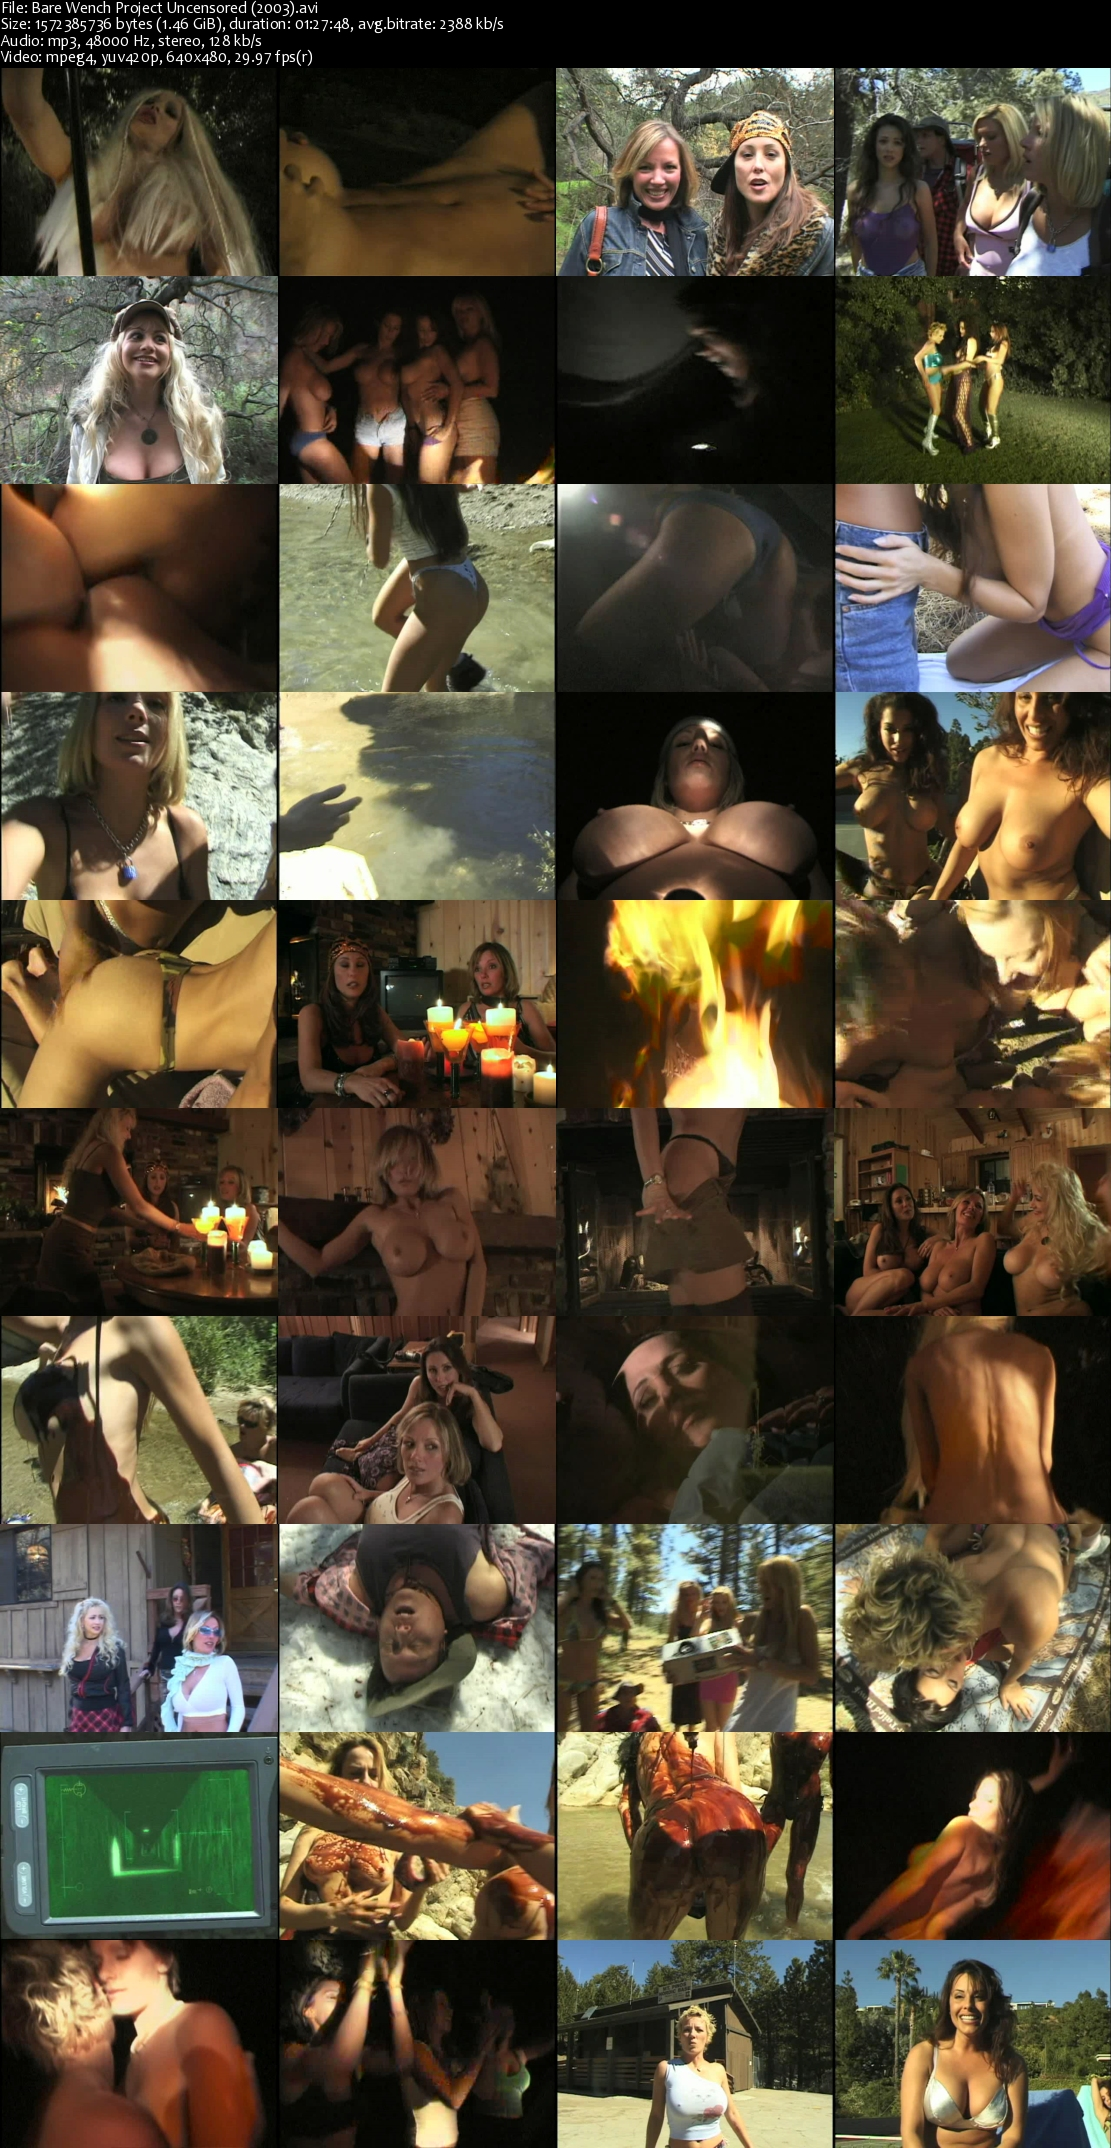 bare_wench_project_uncensored_2003